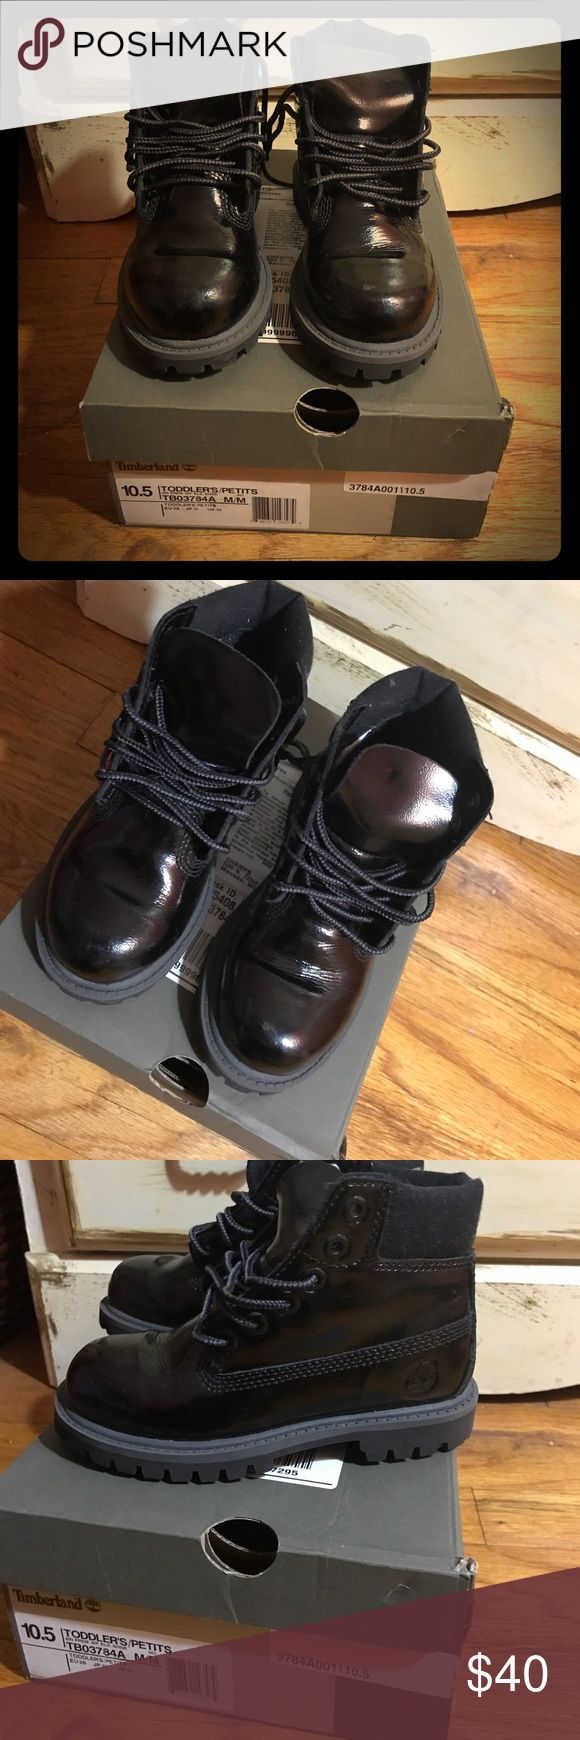 Kids All-Weather Timberland Boots All black all-weather timberland boots. In great condition with minor flaw on left boot, there is a scuff mark on front left boot (as shown in photo). Comes in it's original box. Great for kids to wear in rain & snow. Timberland Shoes Boots